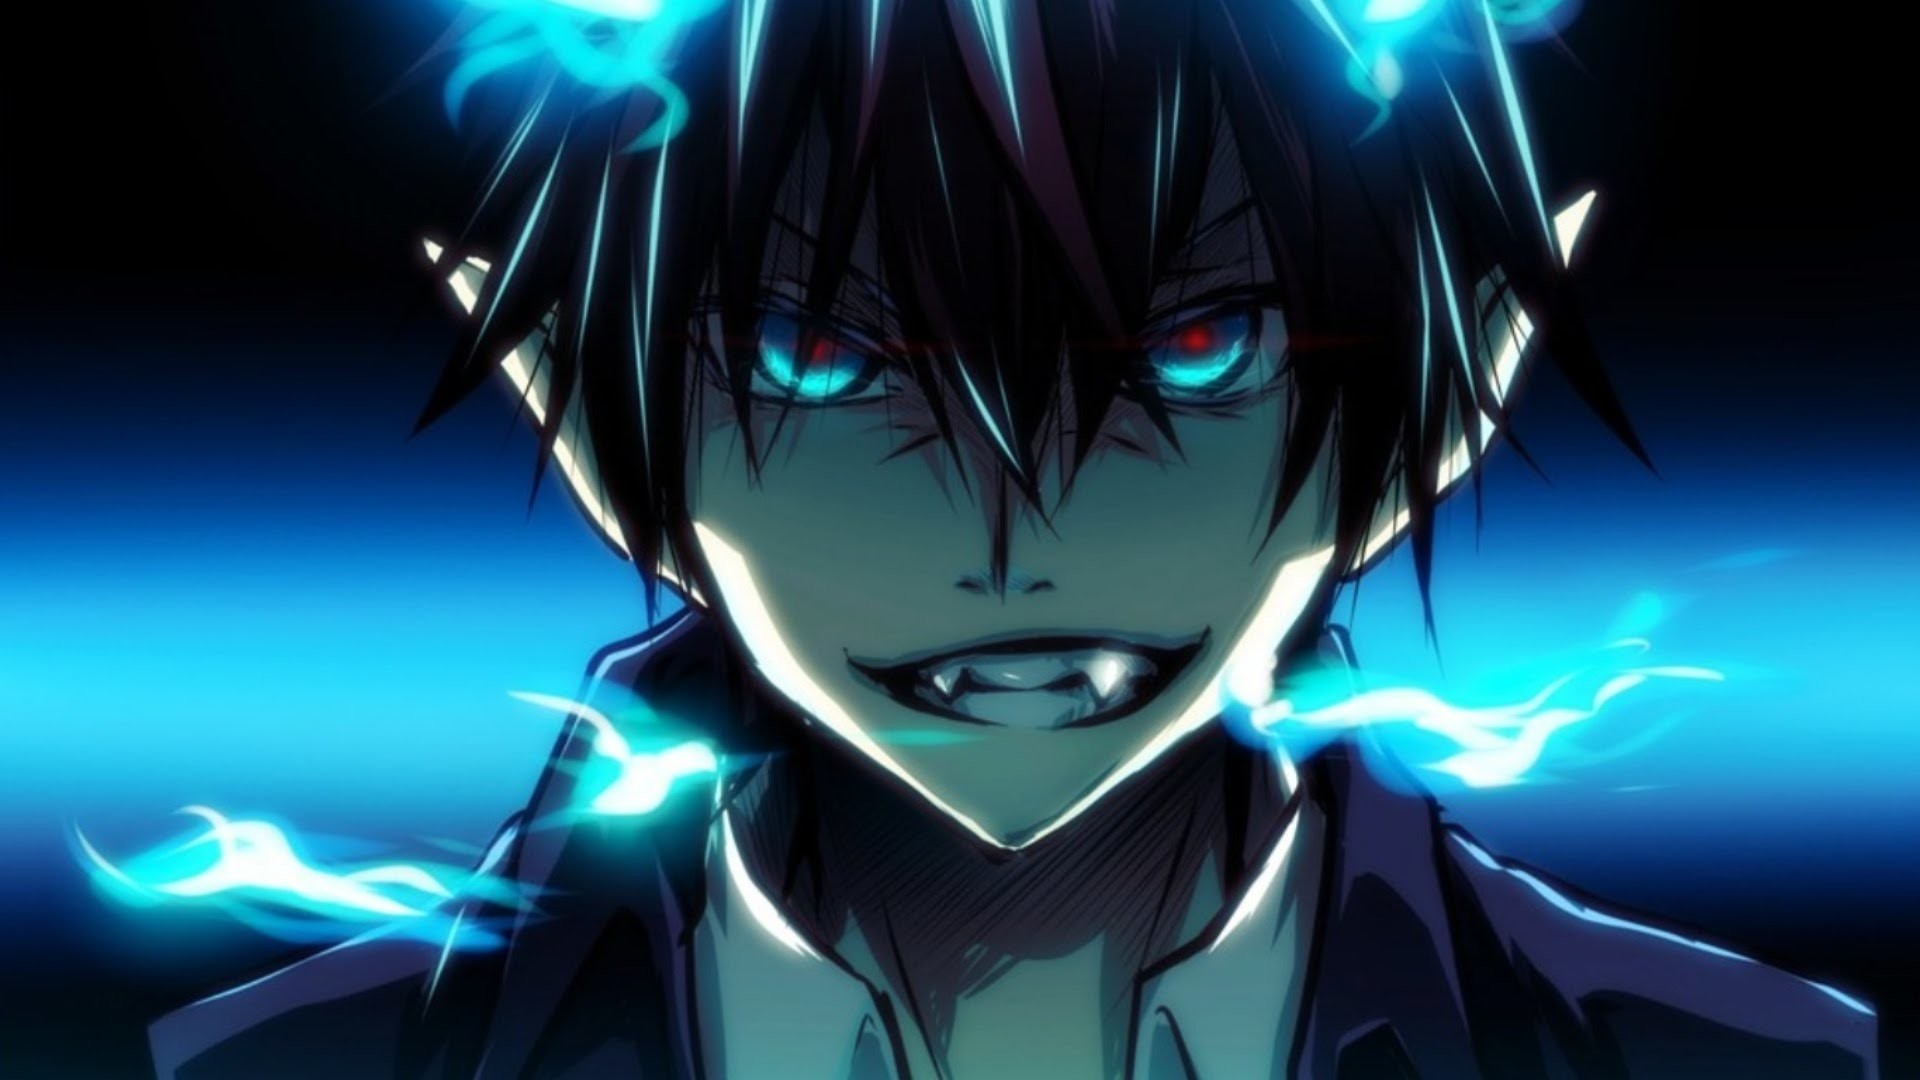 Res: 1920x1080, Blue Exorcist